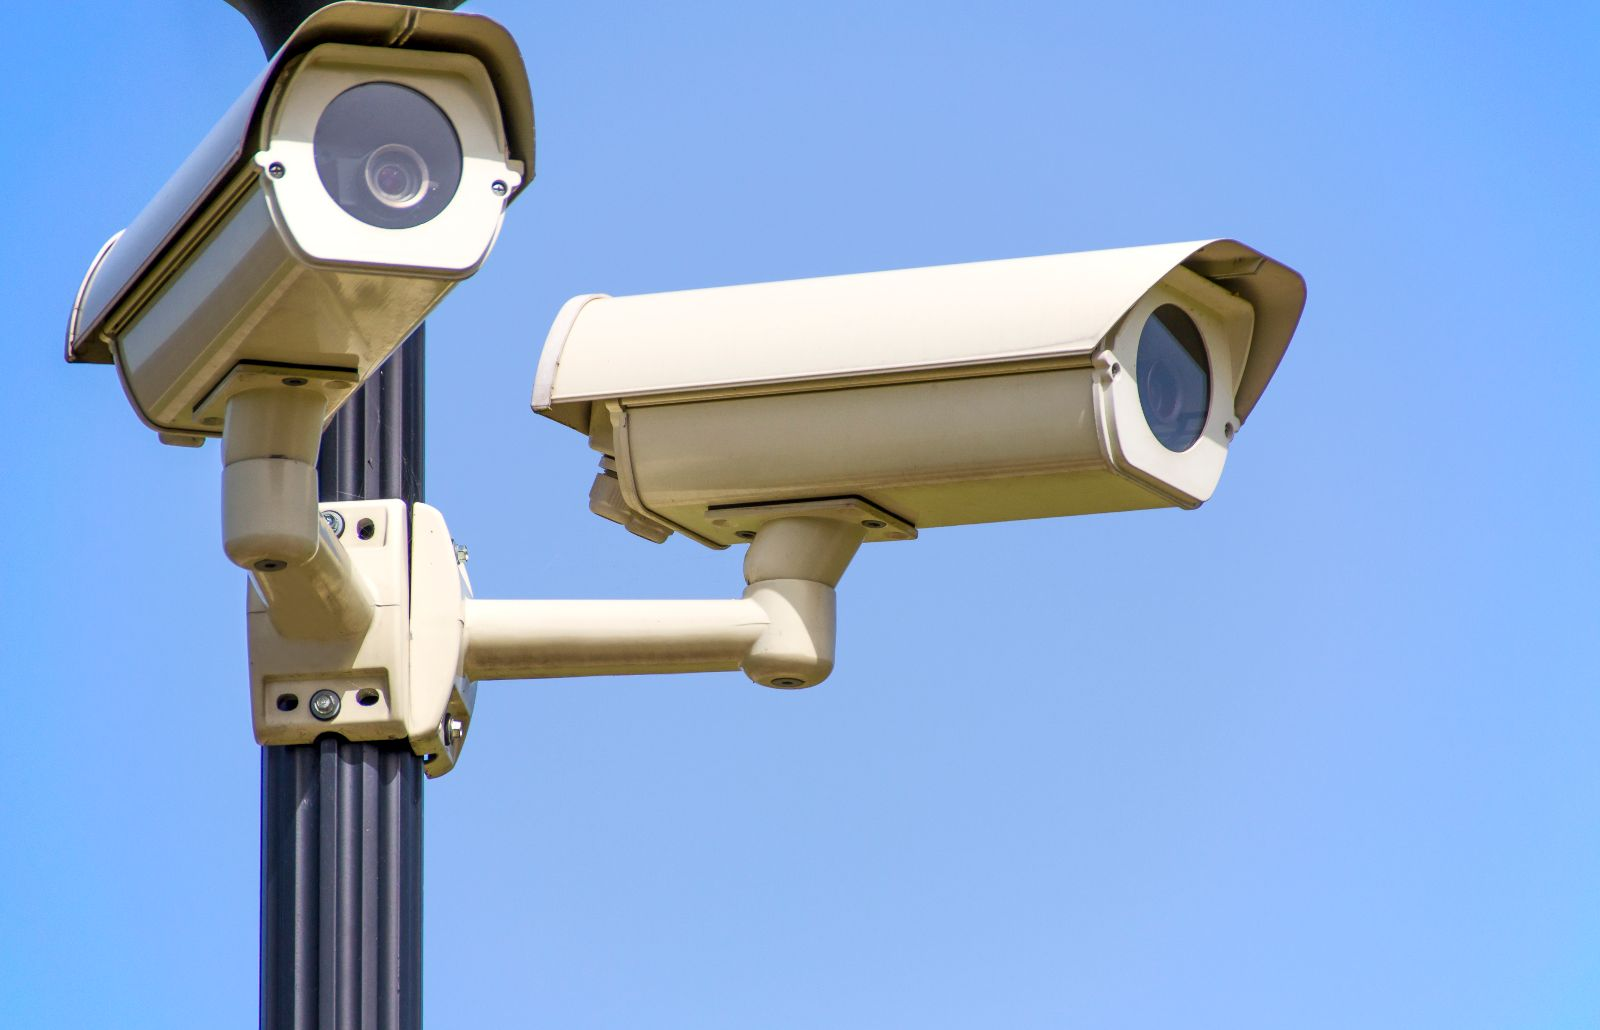 How to Choose an Appropriate Closed-Circuit Surveillance Camera